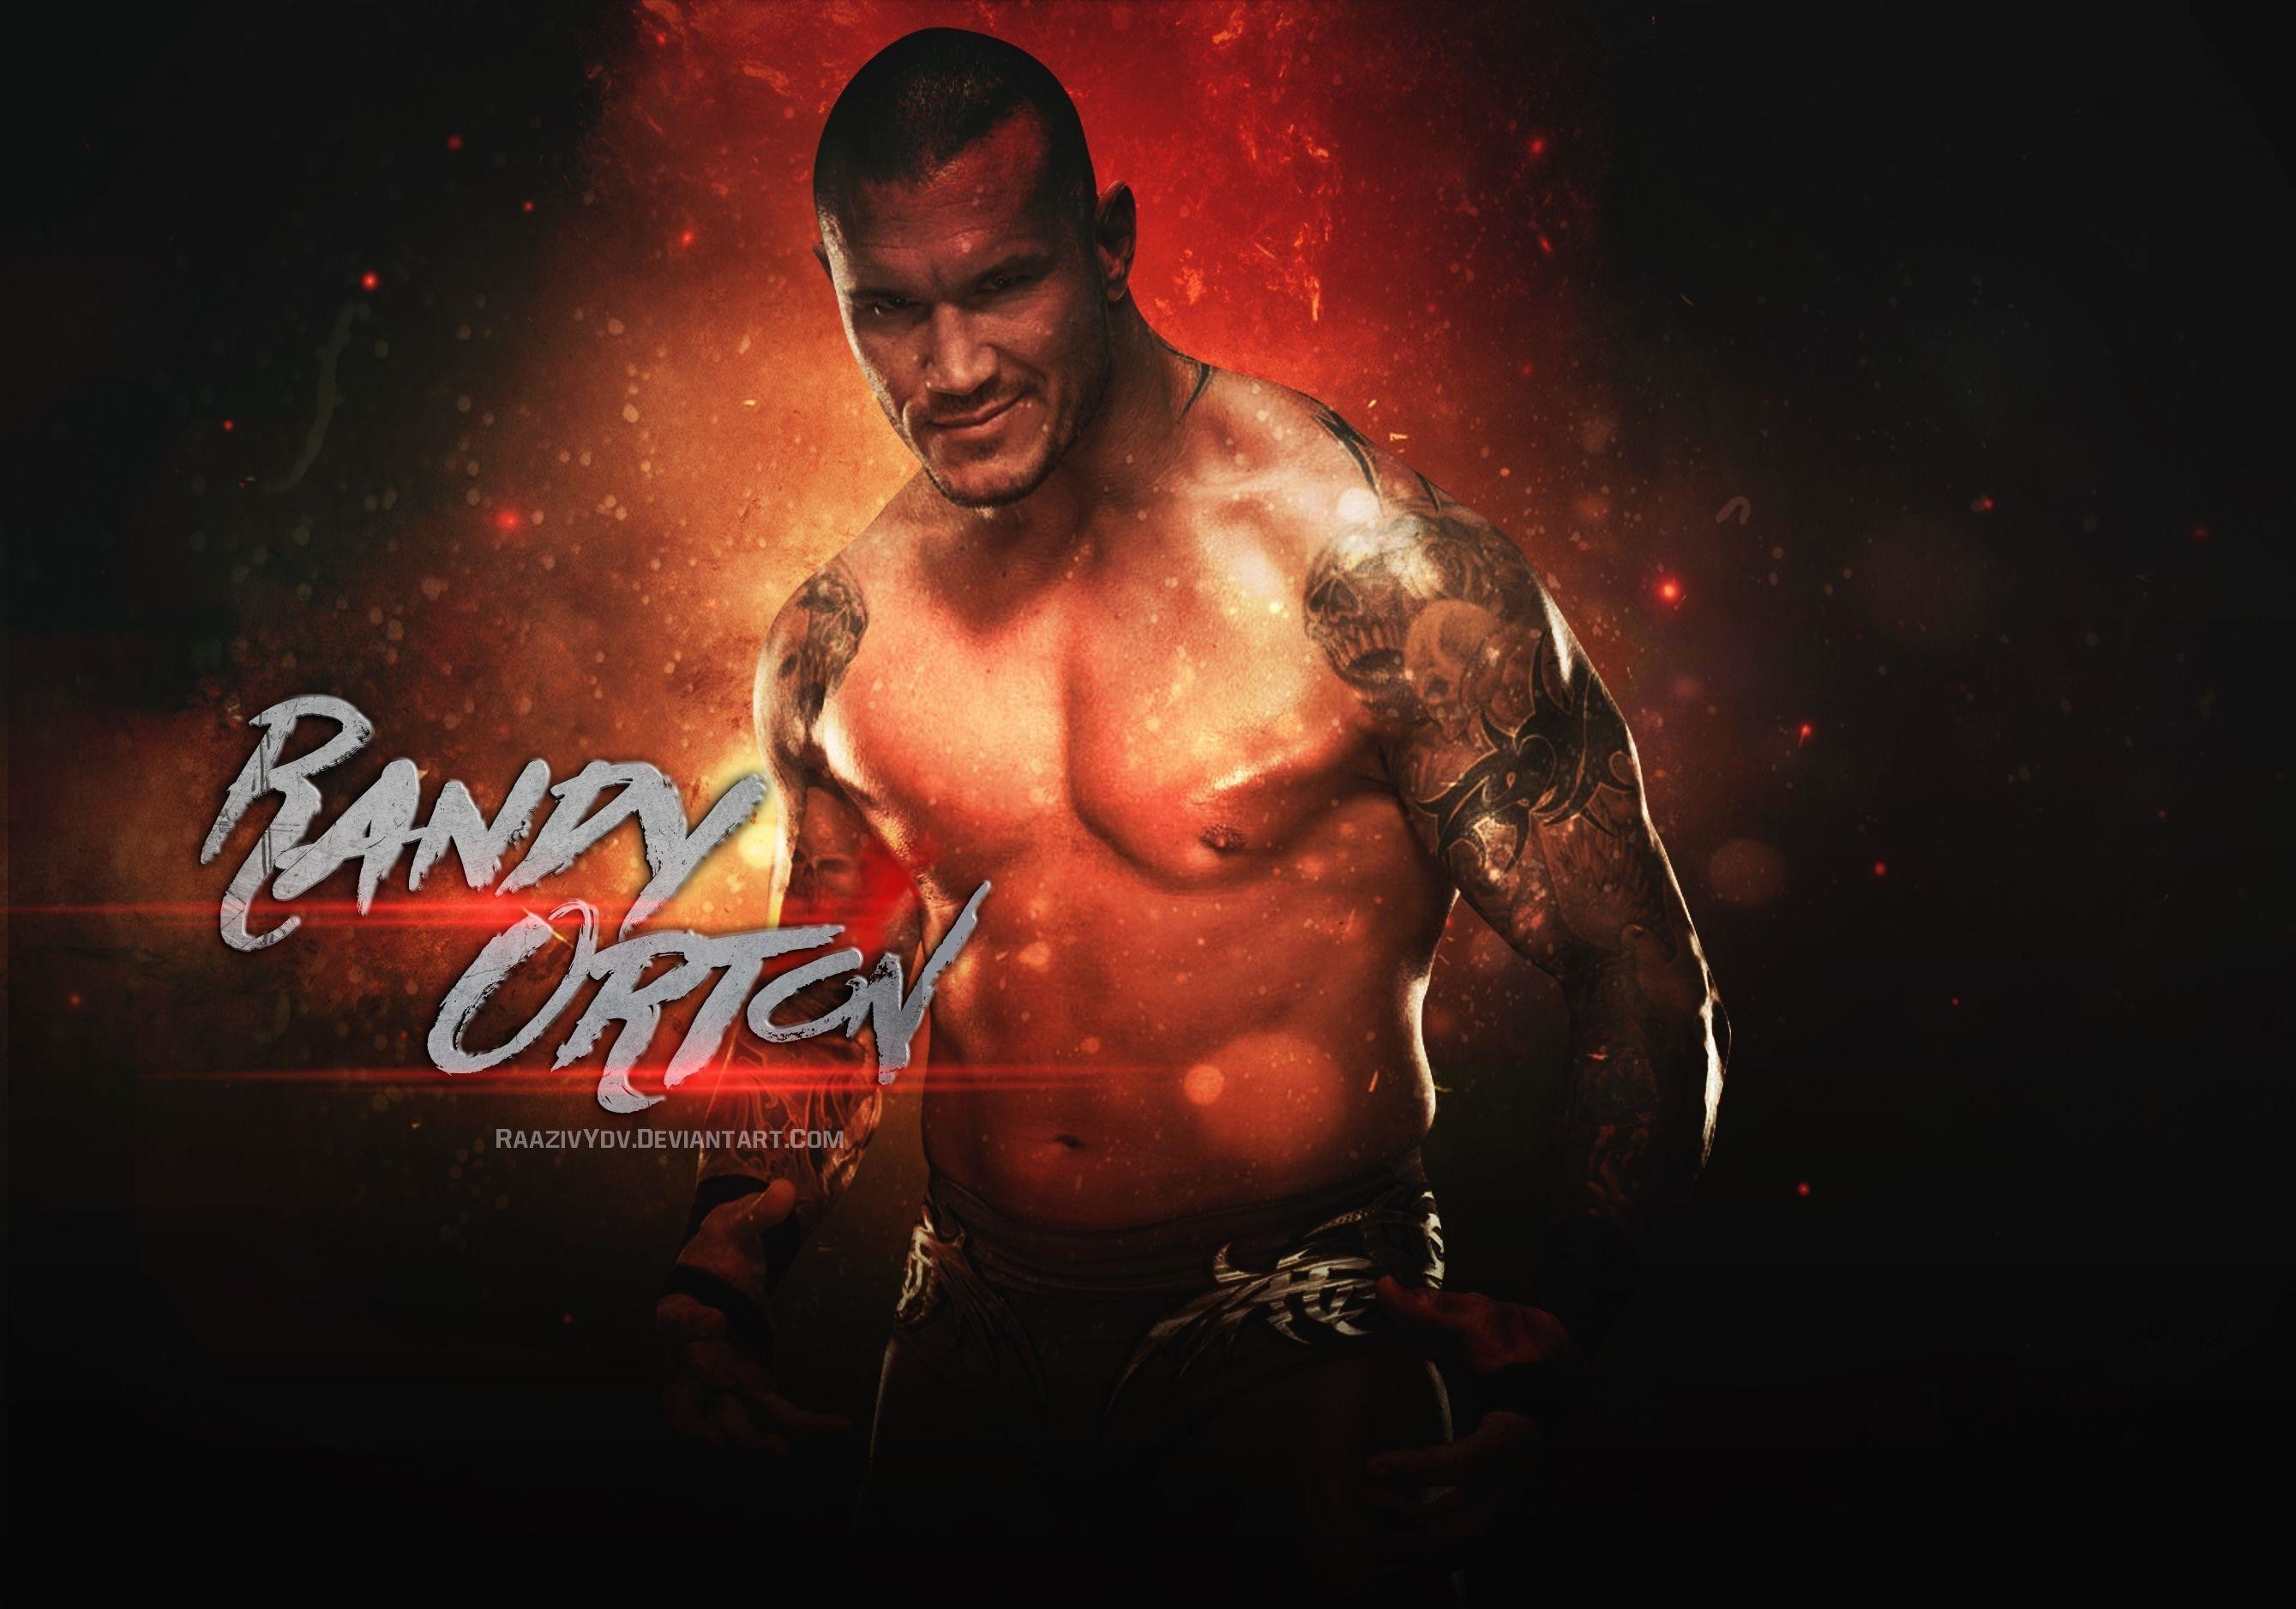 2678x1877 Randy Orton Wallpaper by RaazivYdv on DeviantArt